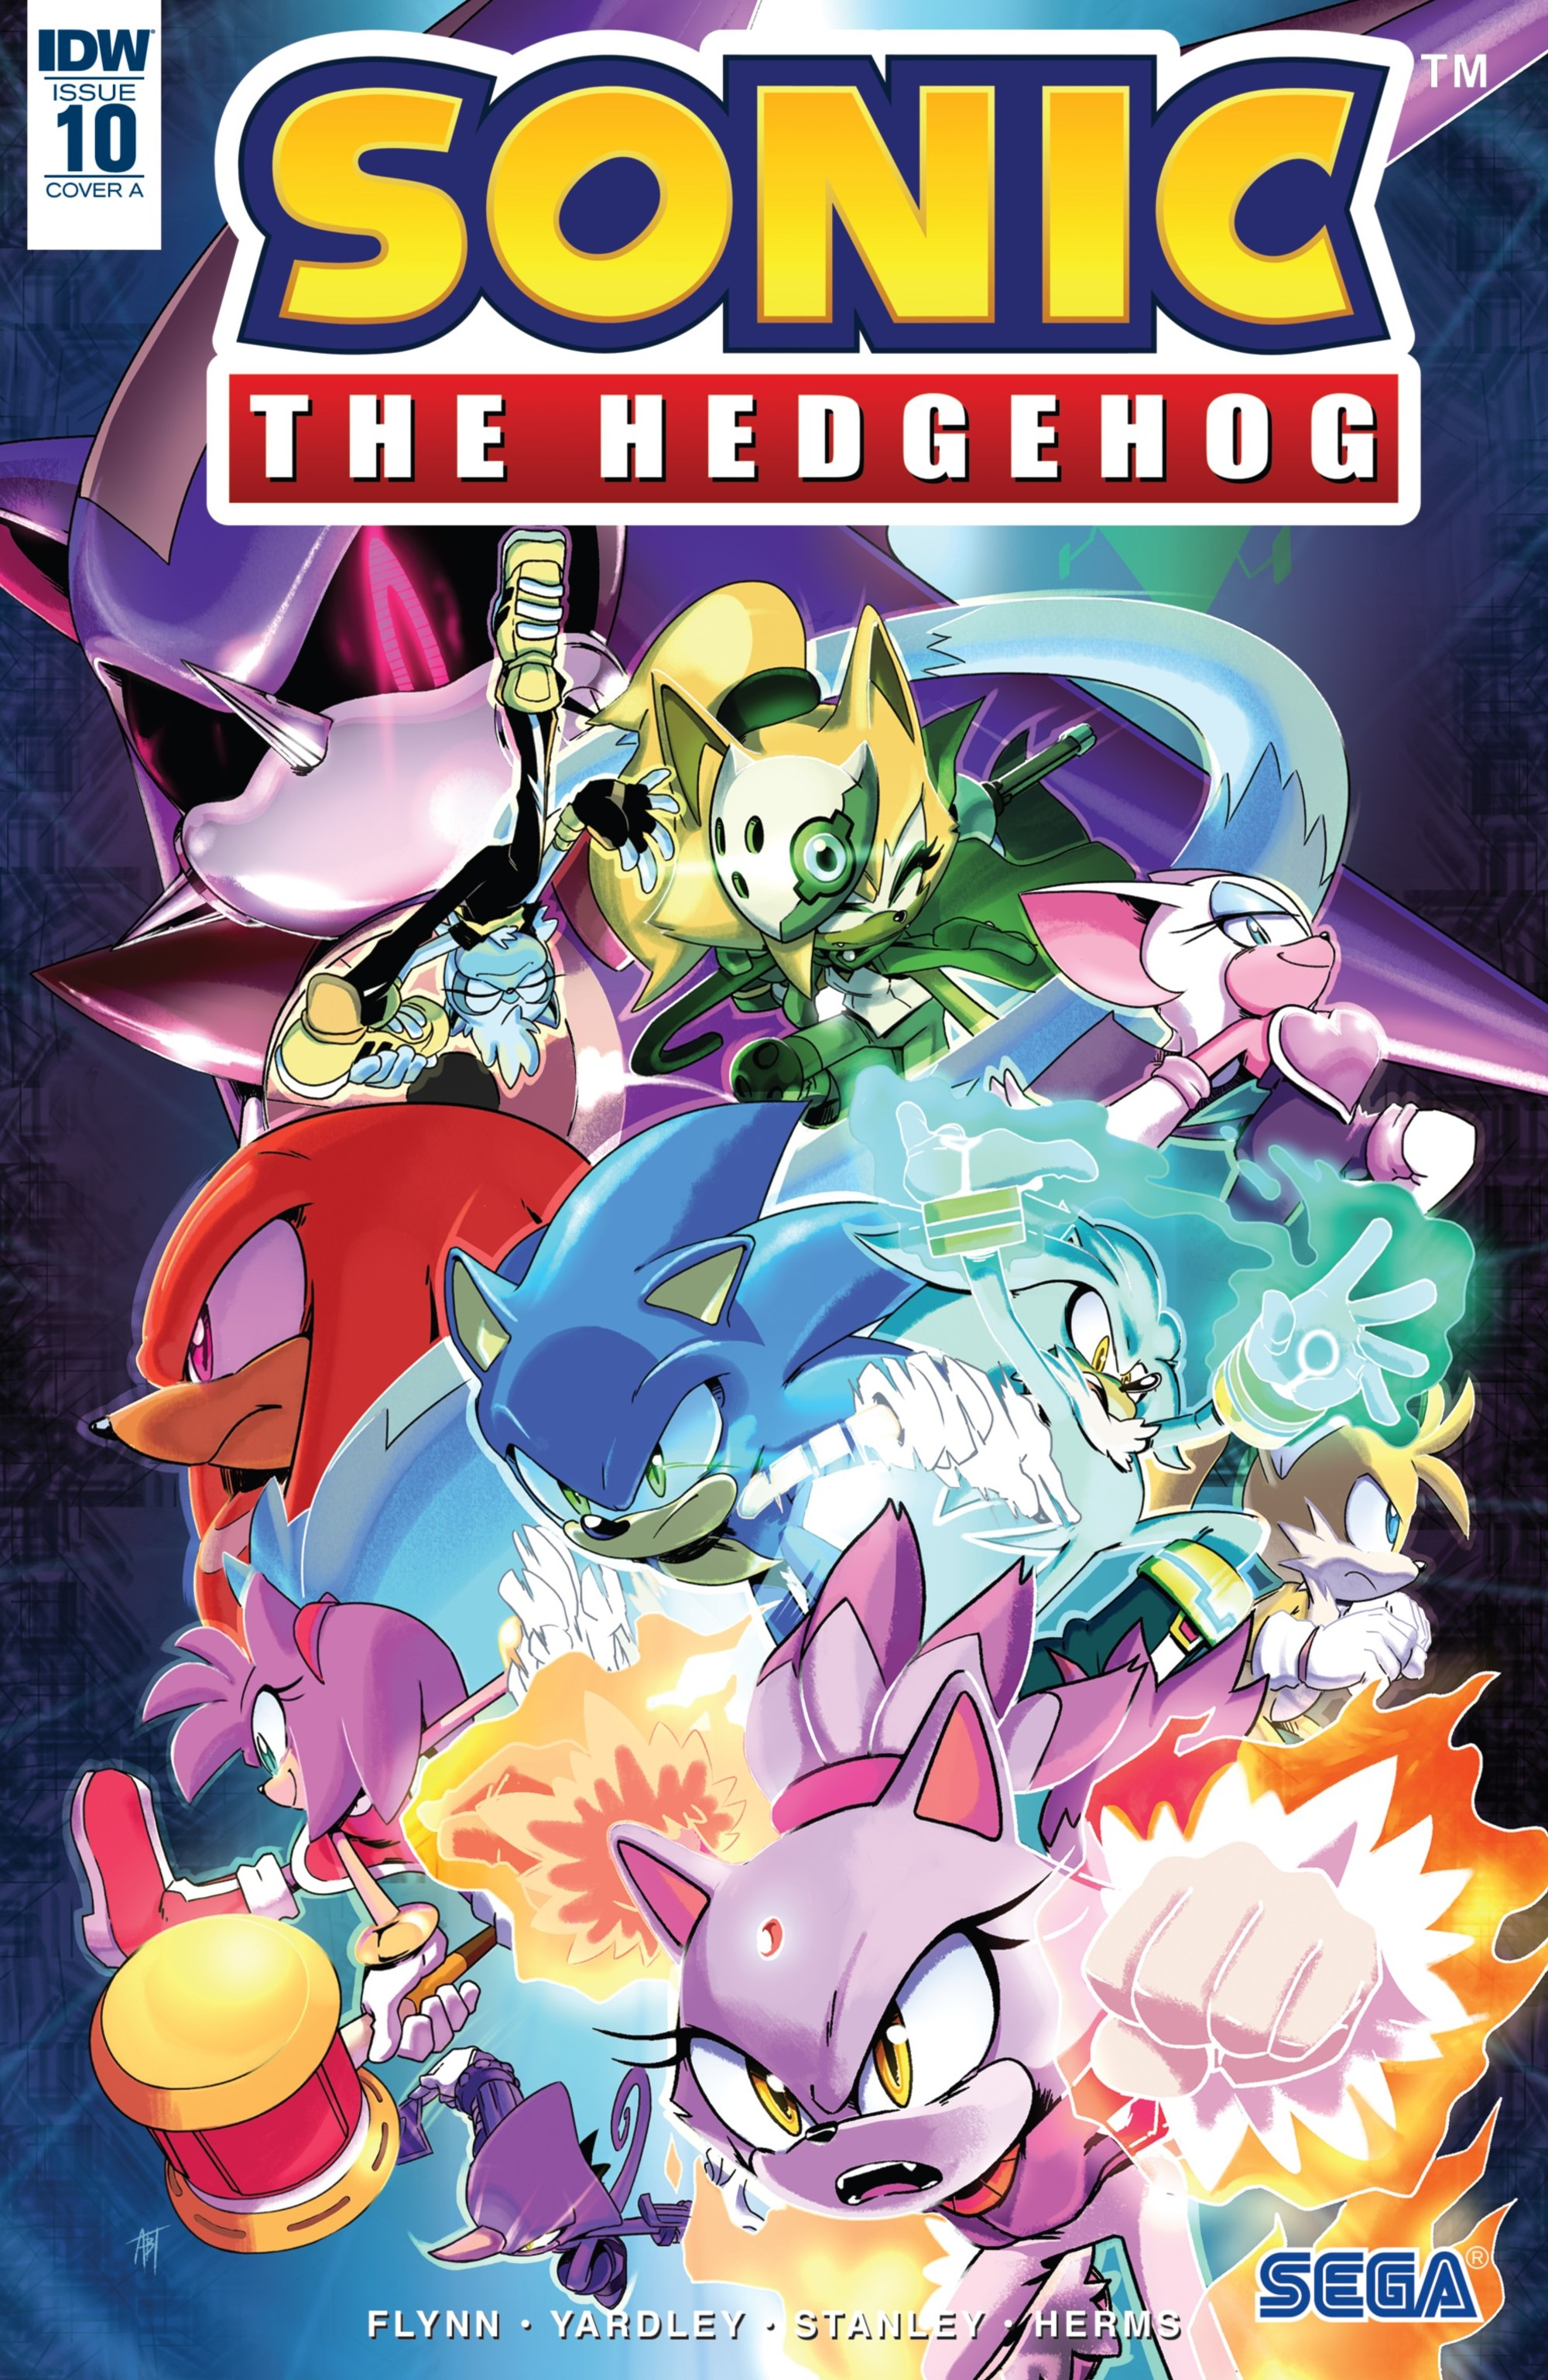 IDW Sonic the Hedgehog Issue 10